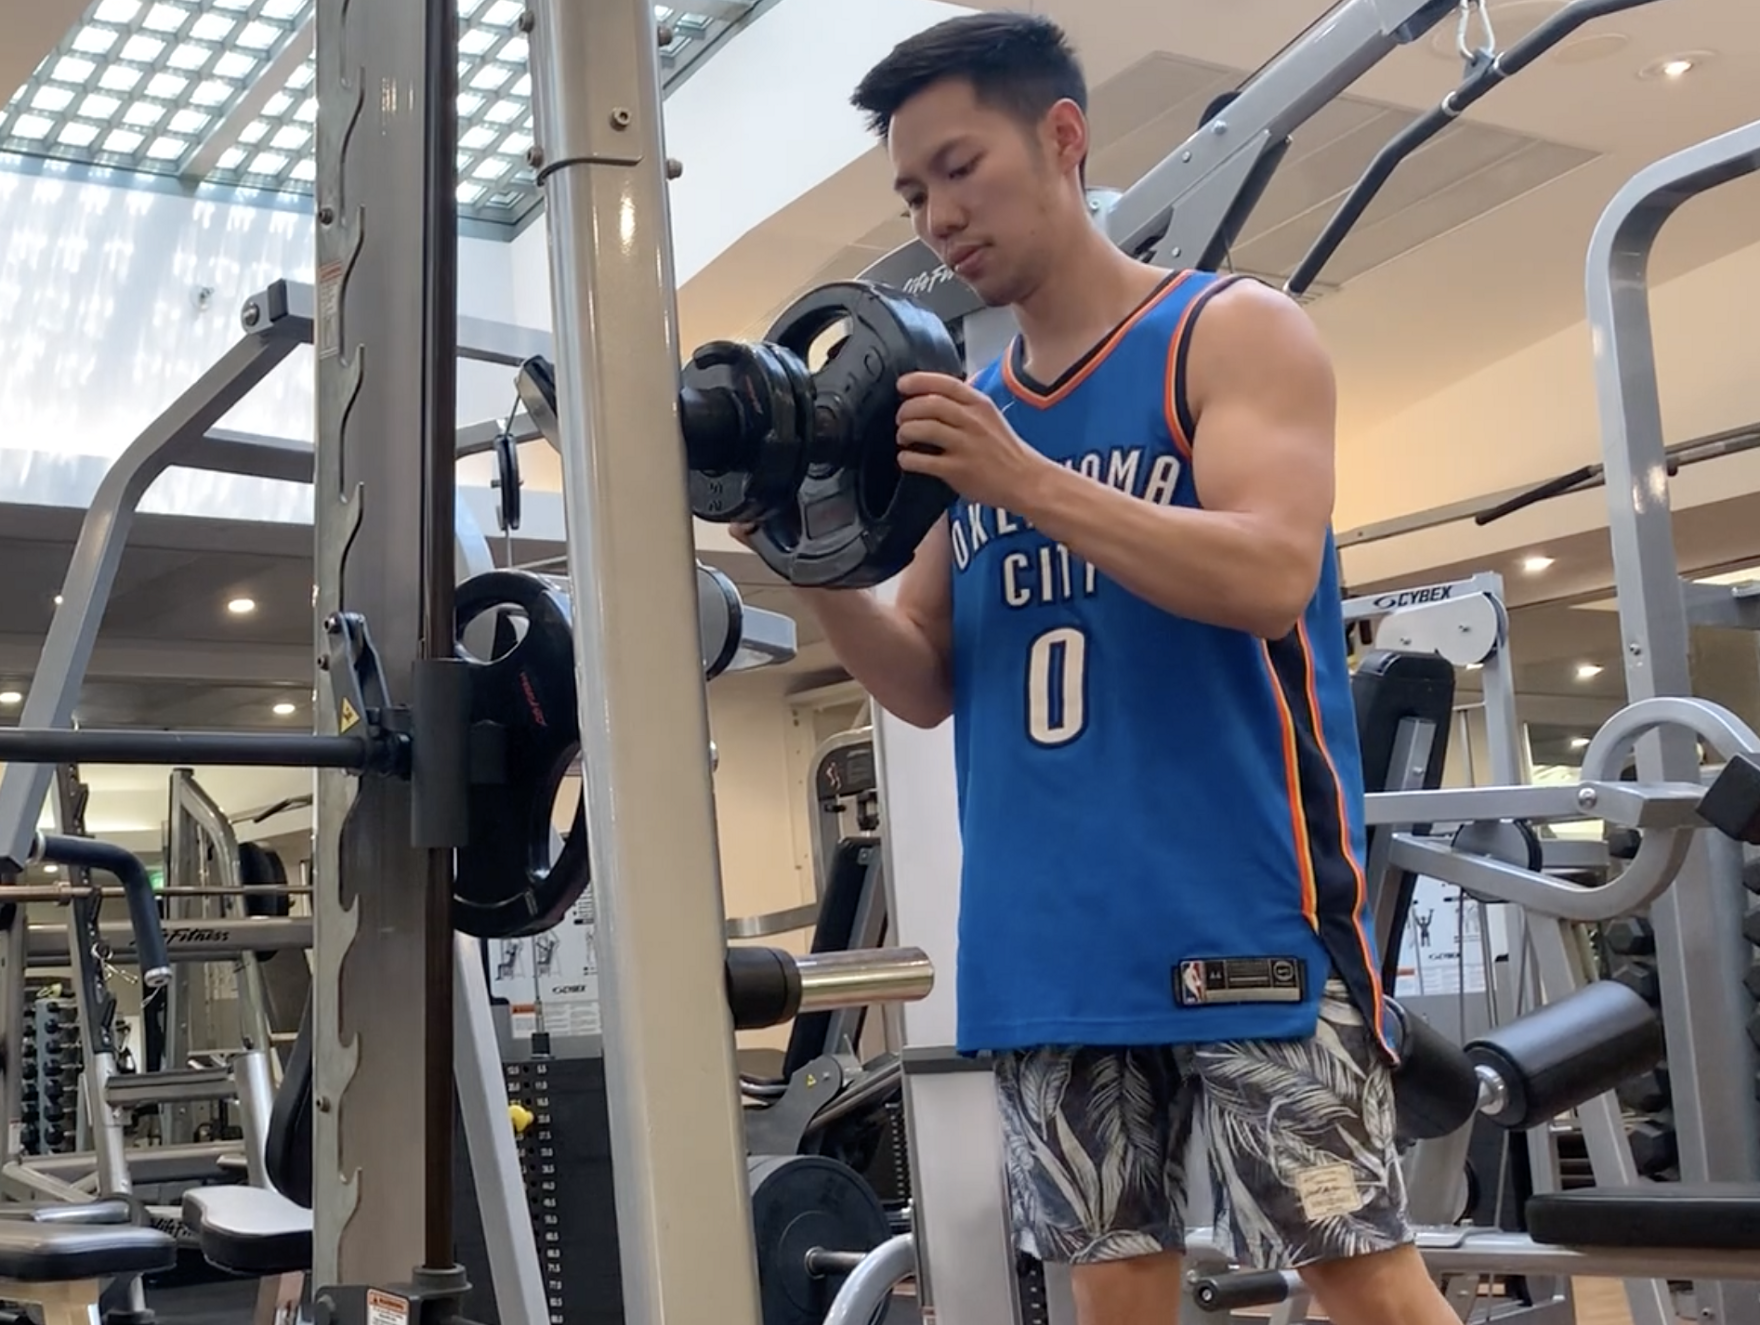 Andrew Ethan Zeng Gym